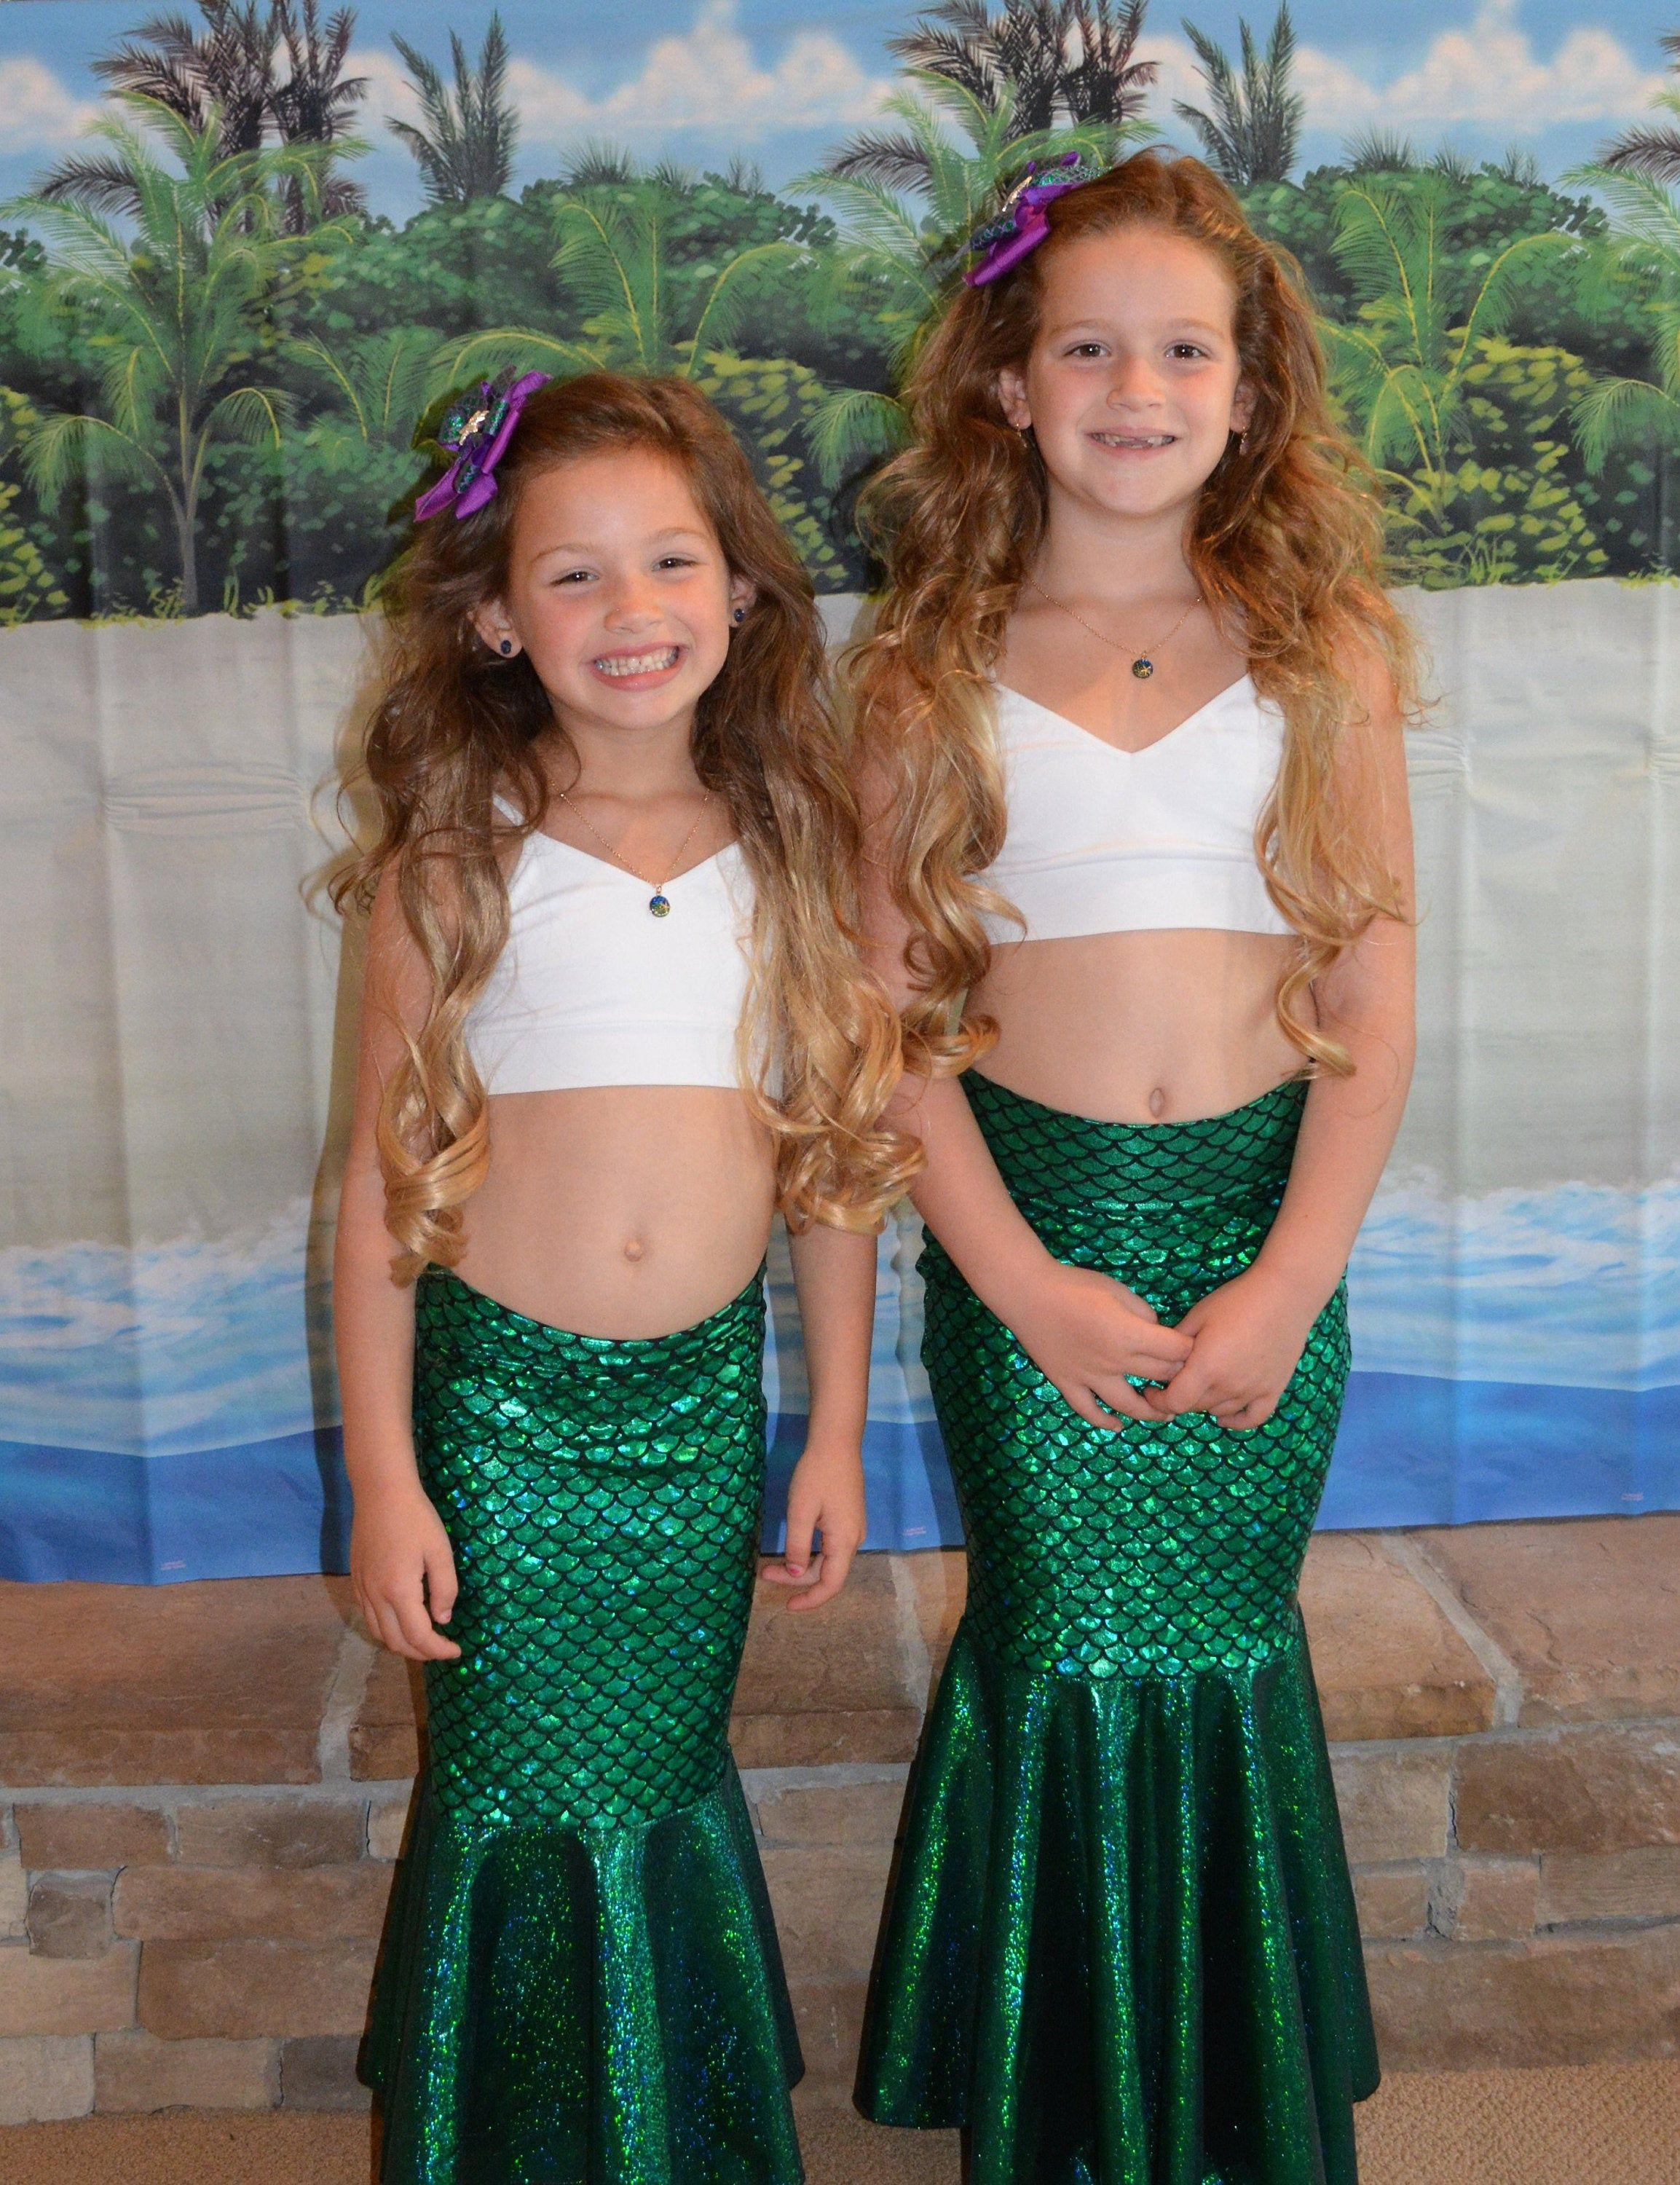 Childs Girls Mermaids Skirt Scale Skirt Fish Tail Shimmering Scale Skirt Pageants Dance Cheer Birthday Traje De Sirena Para Niñas Sirena Disfraz Niña Disfraz De Sirena